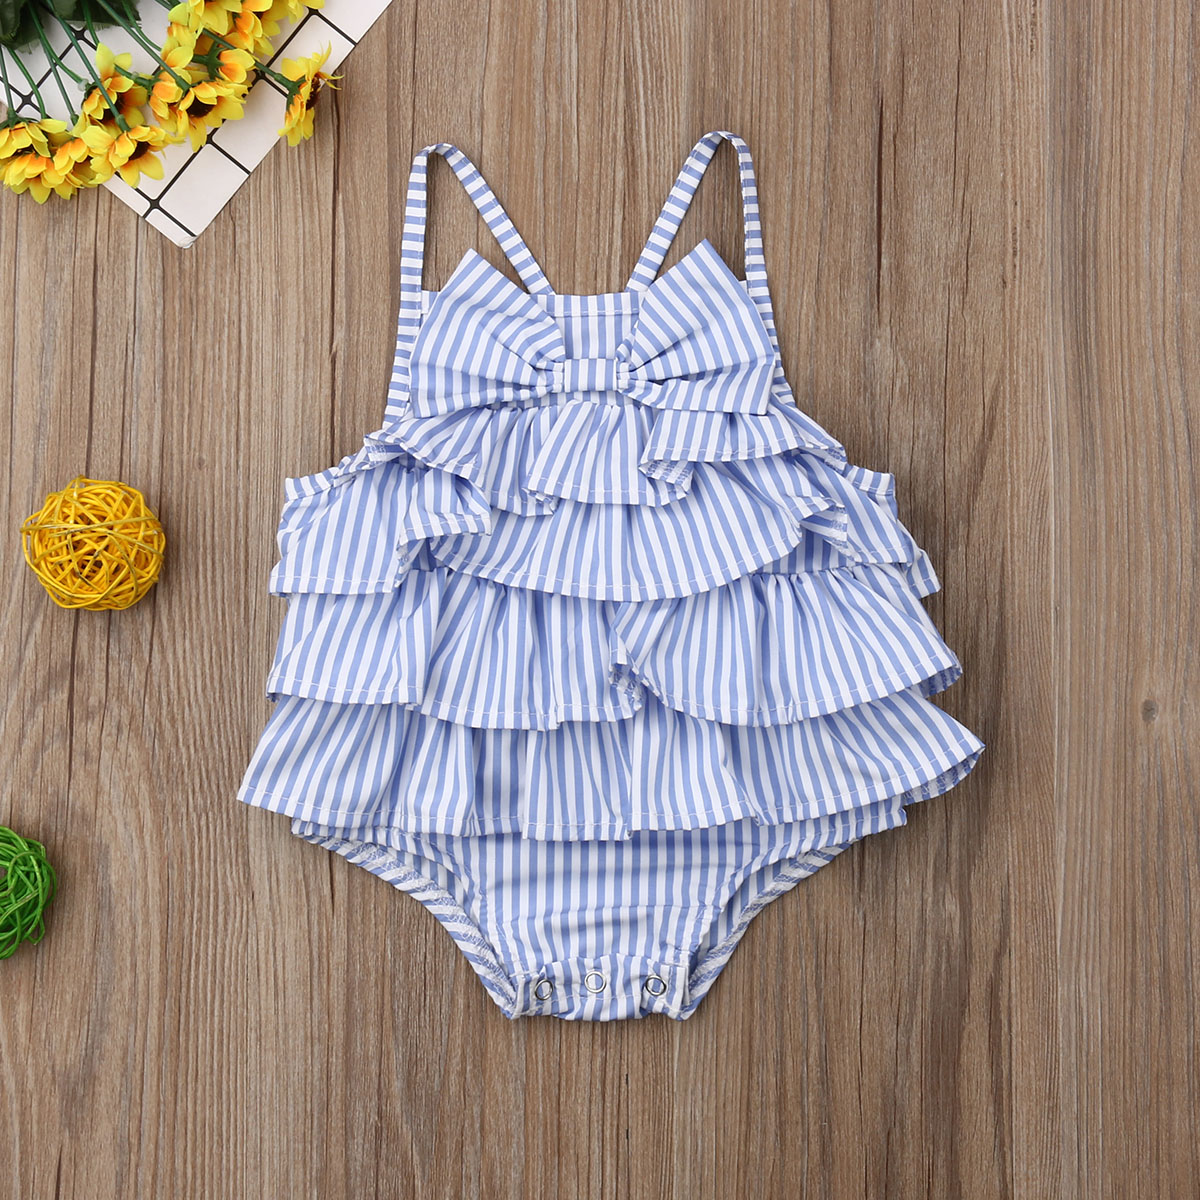 Emmababy New Summer Baby Girls Striped Bow Holiday Beach Swimsuit  Sleeveless Ruffle Bodysuit Outfits